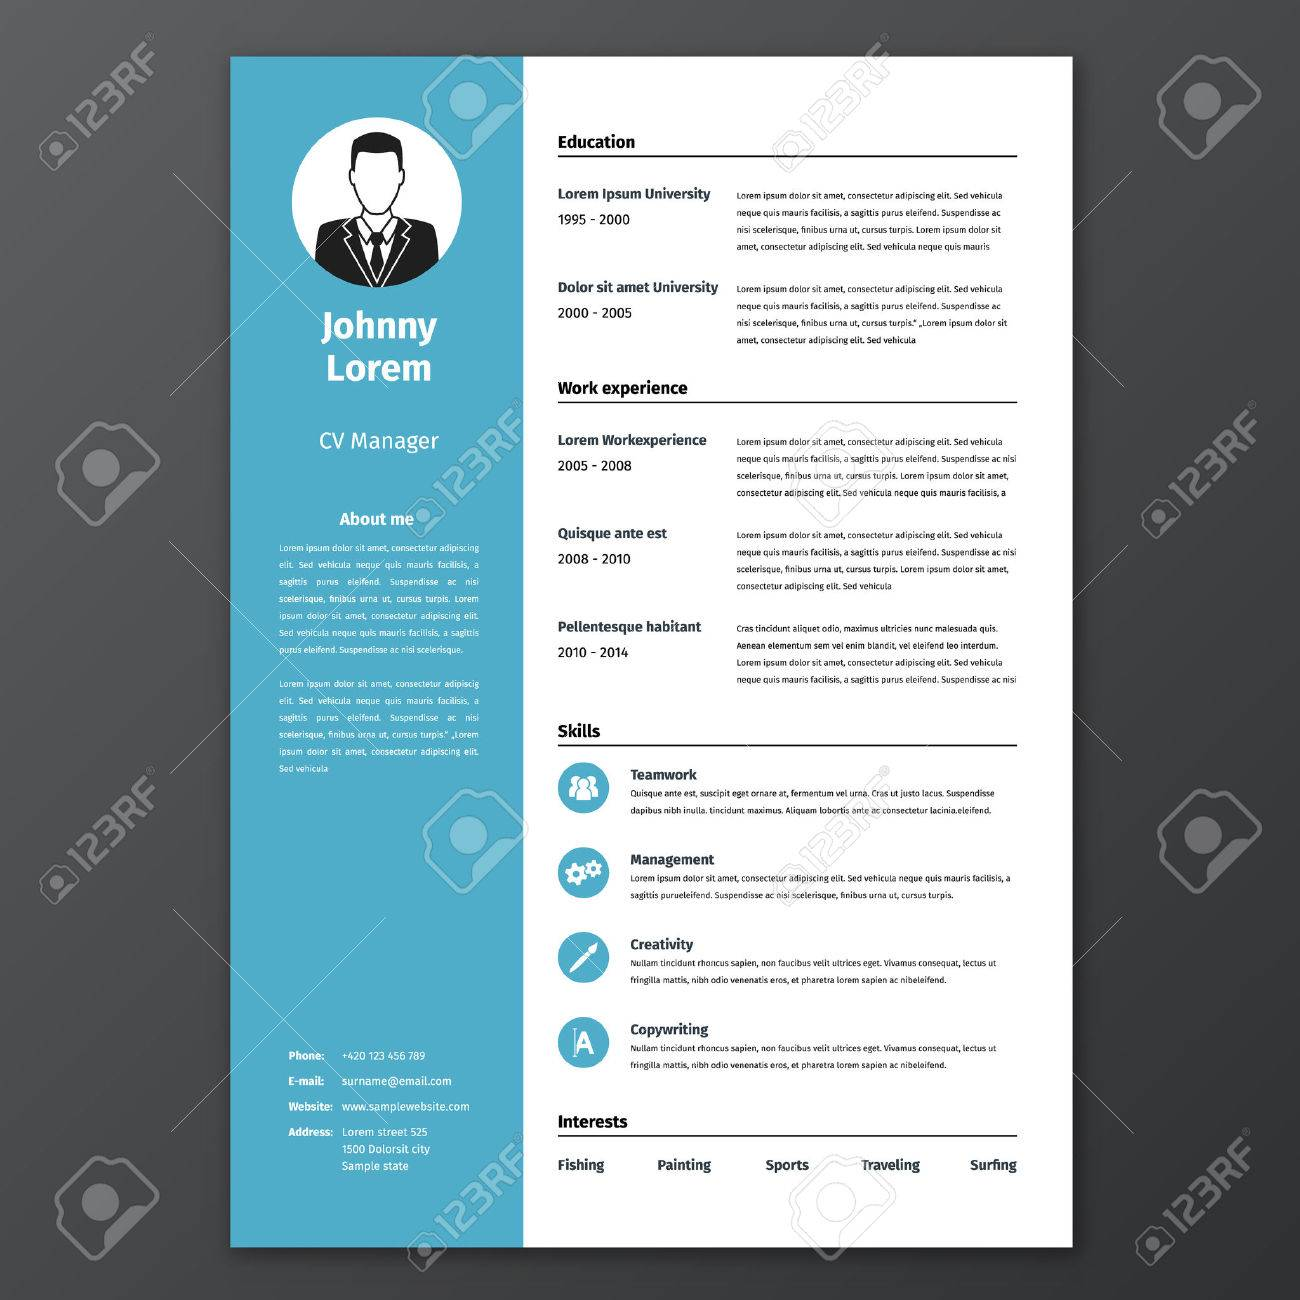 CV Resume Template Royalty Free Cliparts, Vectors, And Stock ...